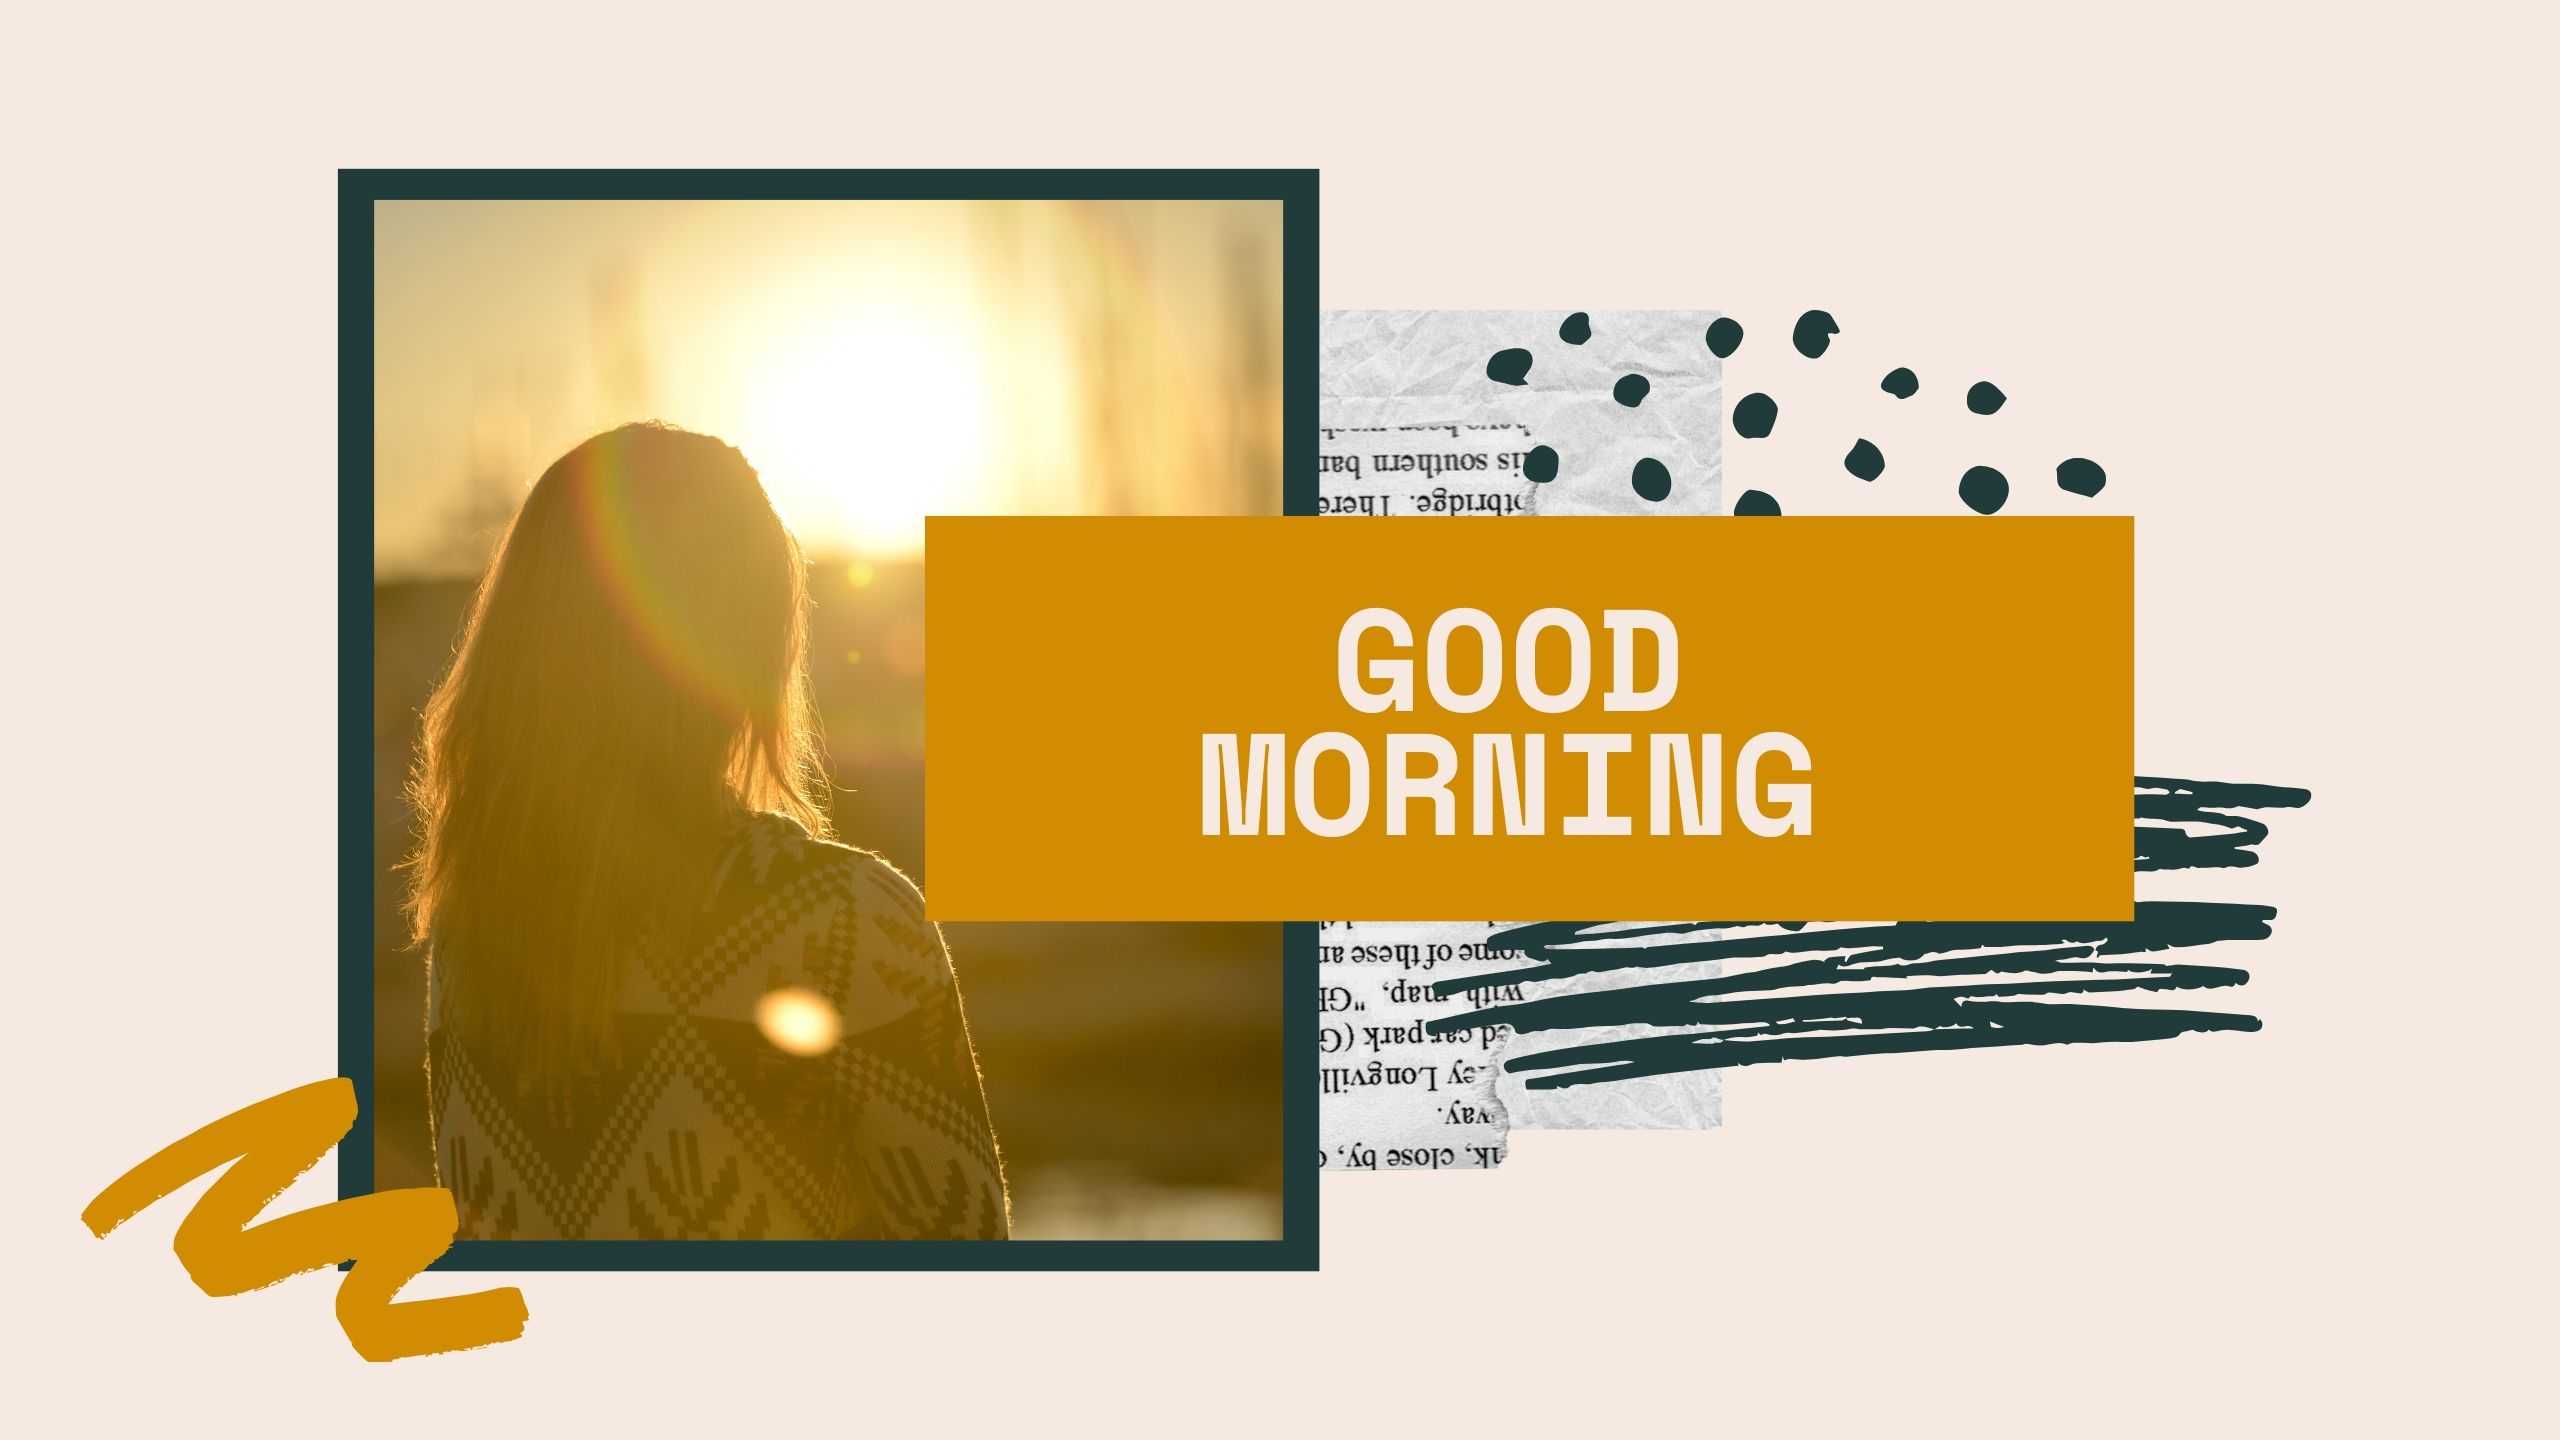 Good Morning Image with sun rising full HD free download.